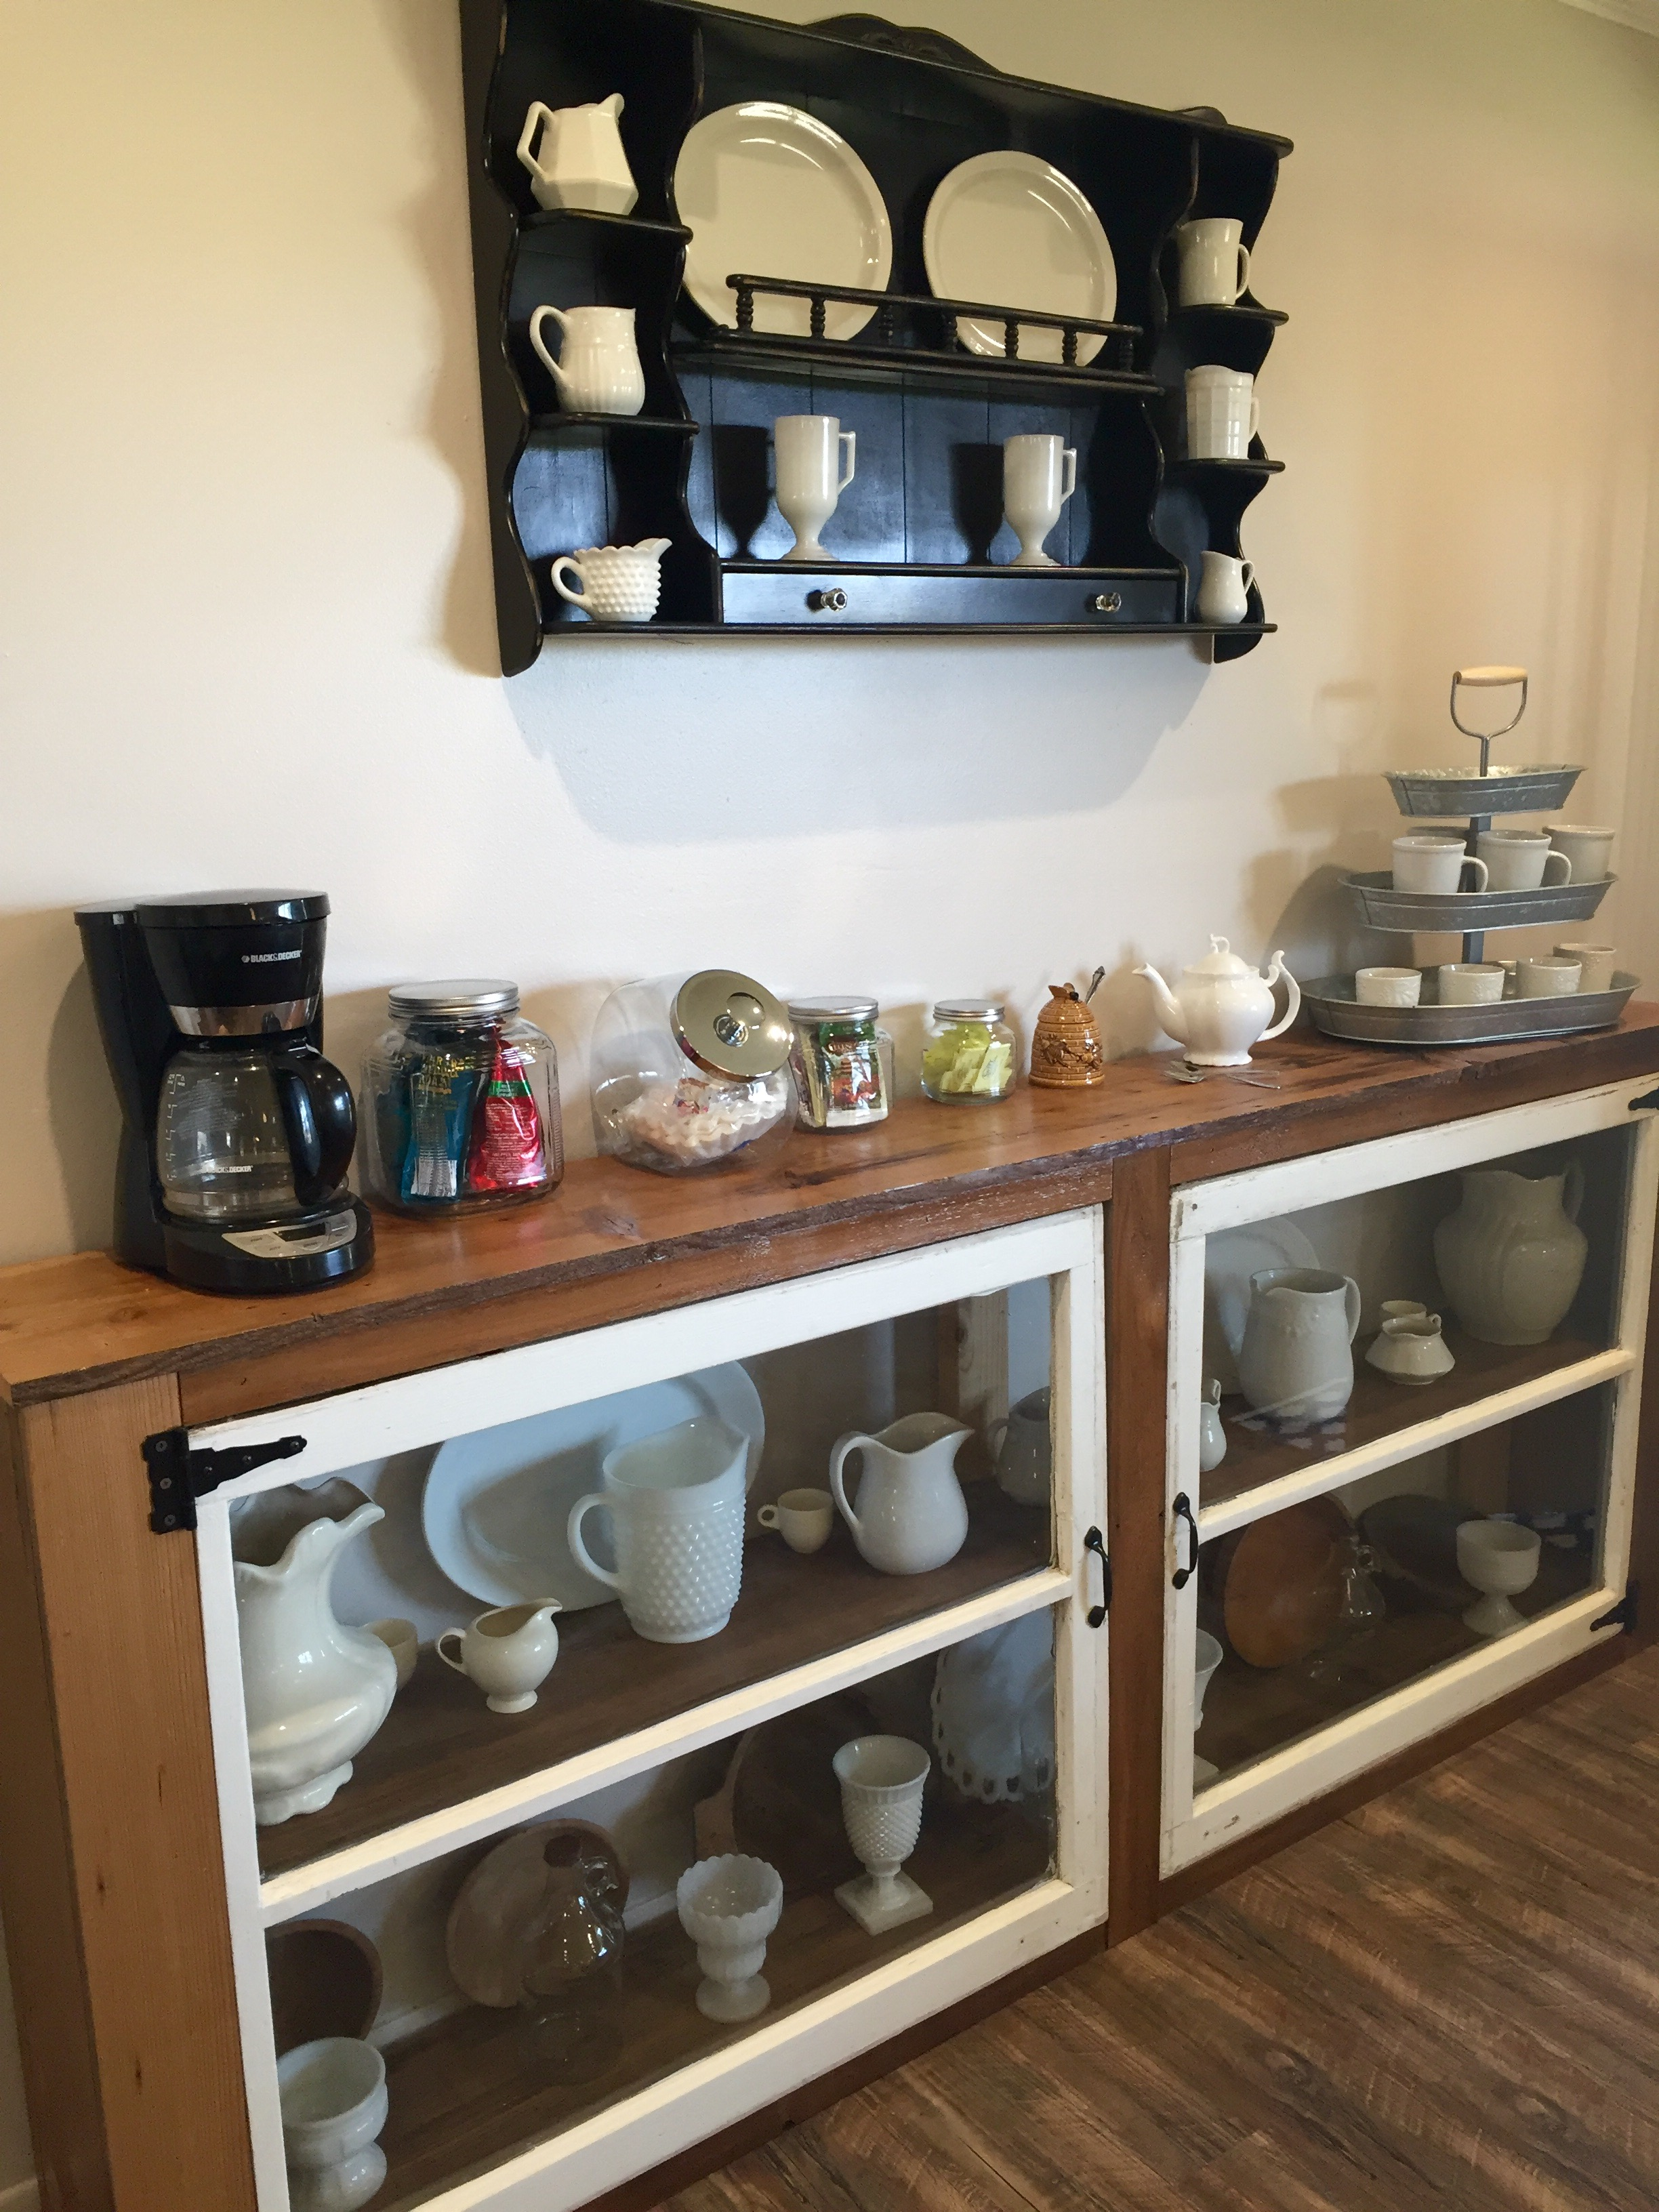 Ordinaire Give Your Home Some Organized Homey Charm With This DIY Buffet From Old  Windows (and